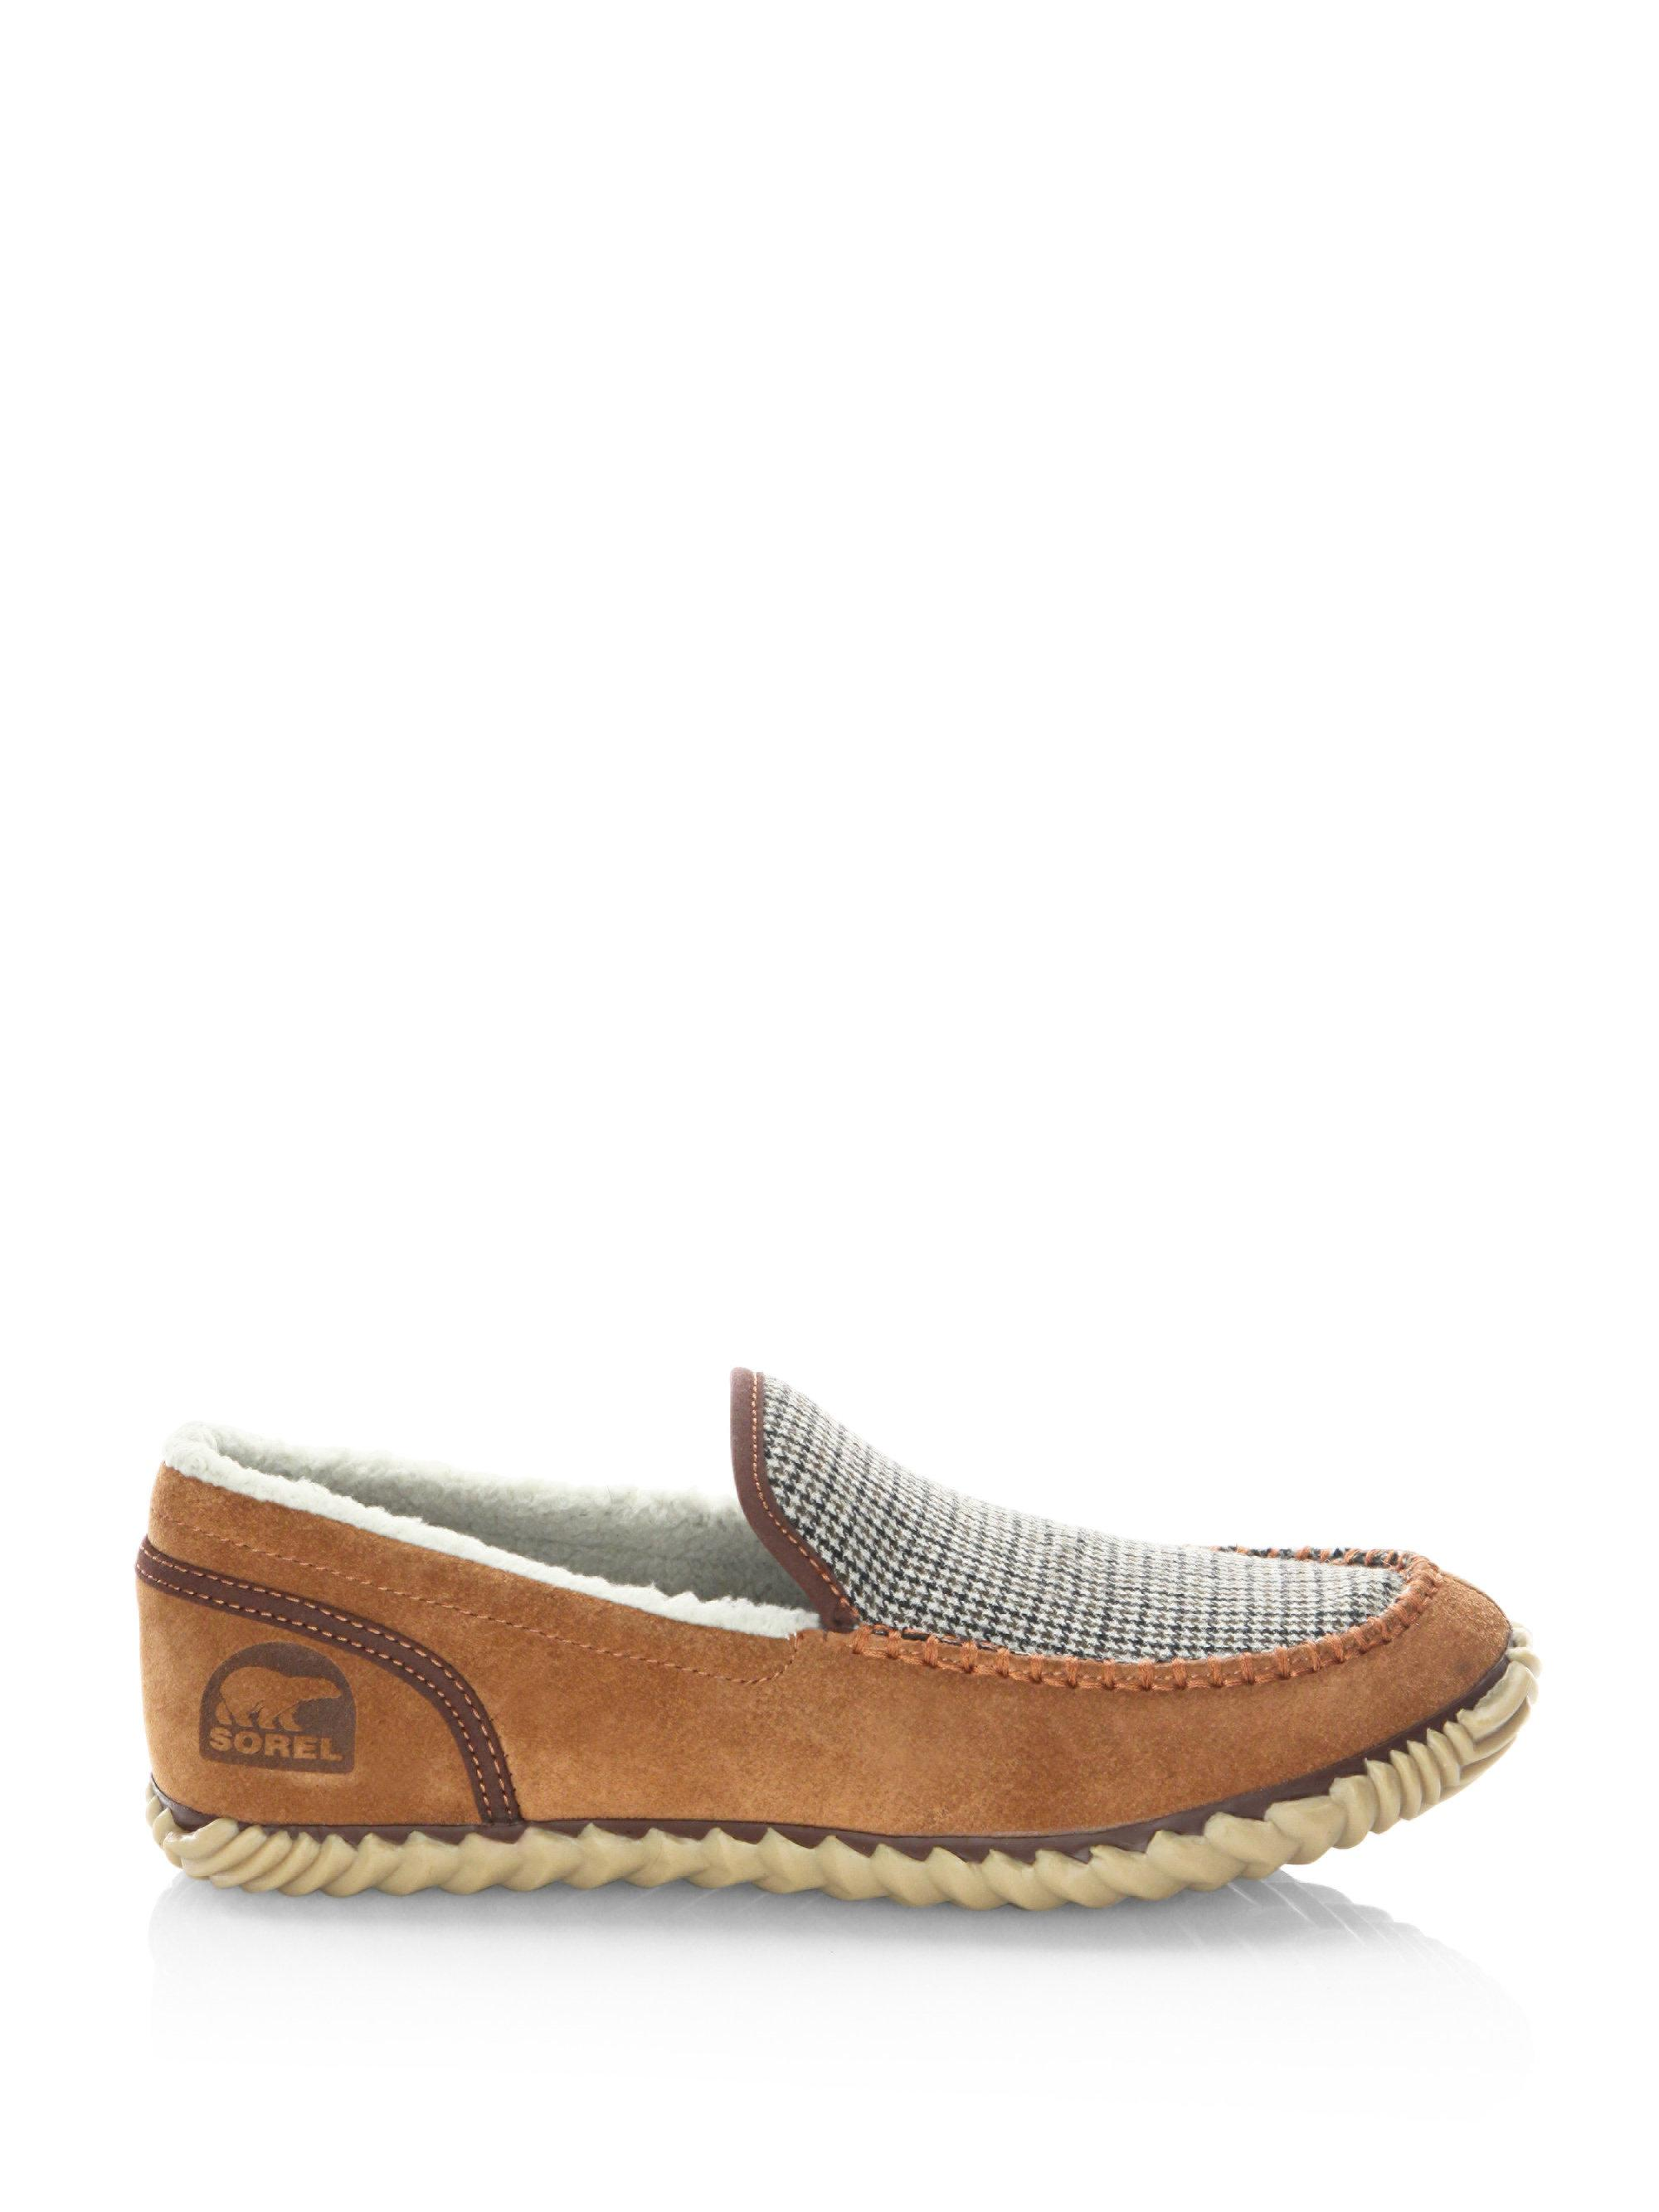 sorel Dude Faux Shearling Lined Suede Slip-On Sneakers